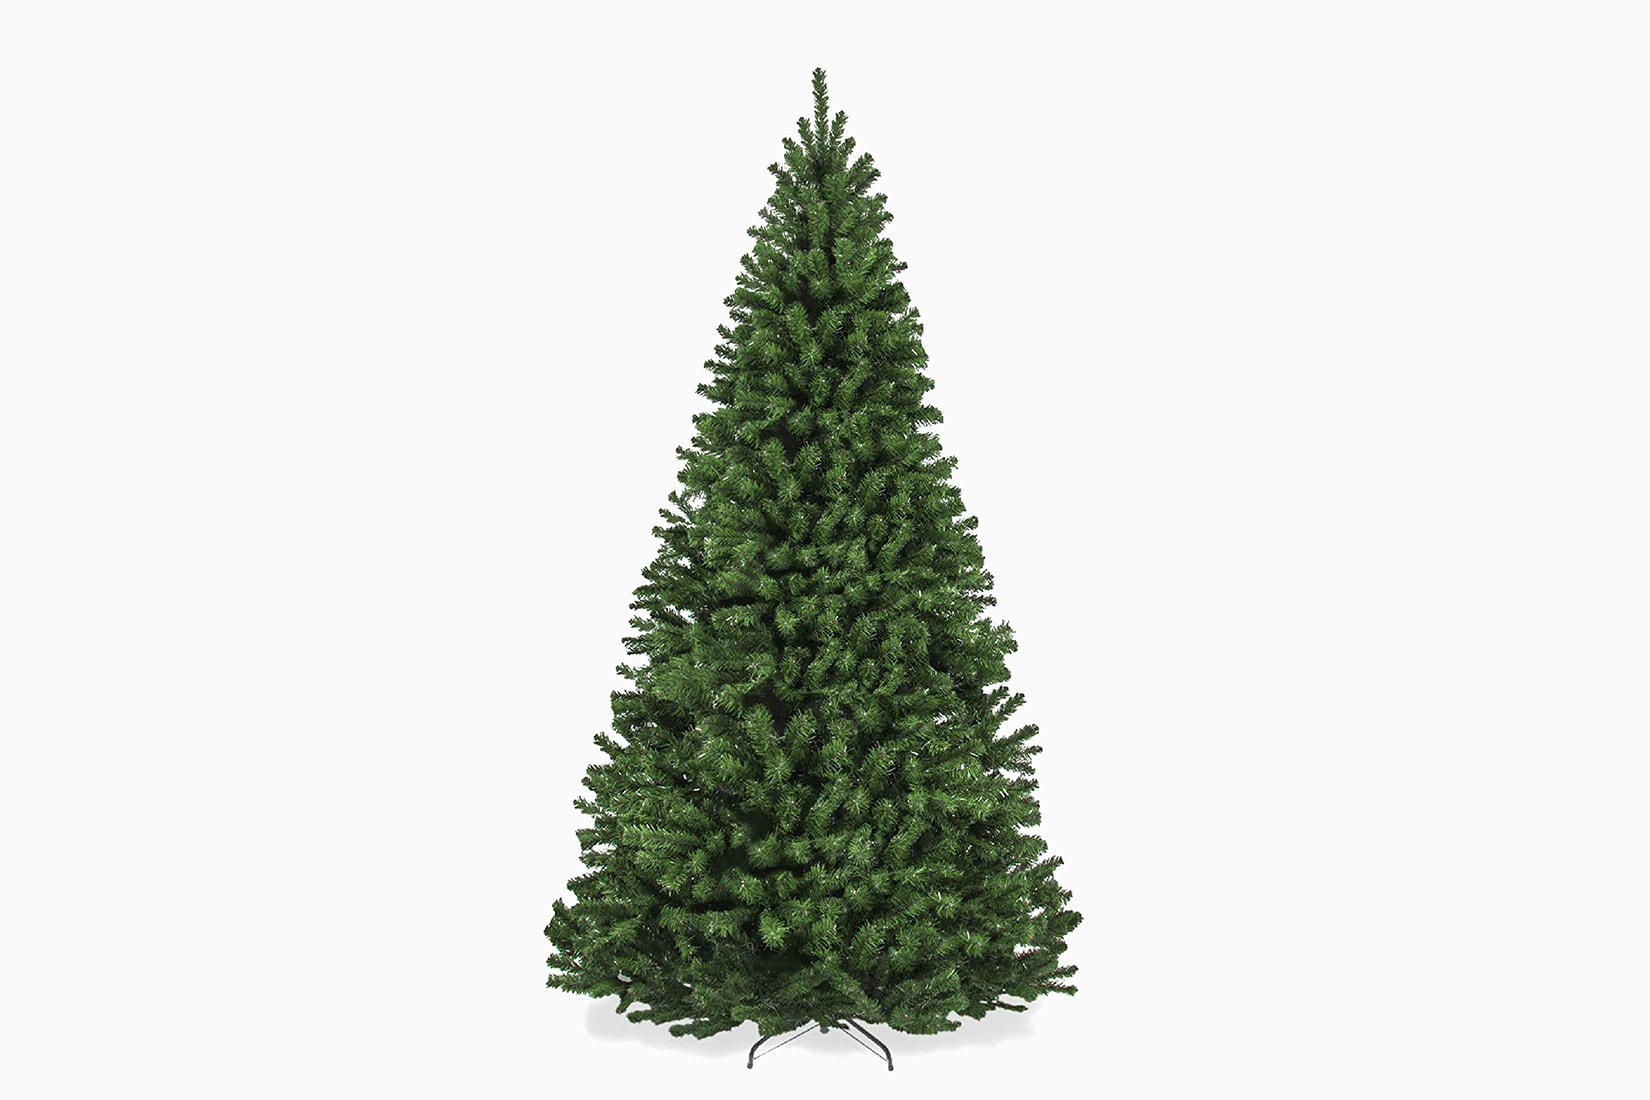 best artificial Christmas tree assemble choice review - Luxe Digital